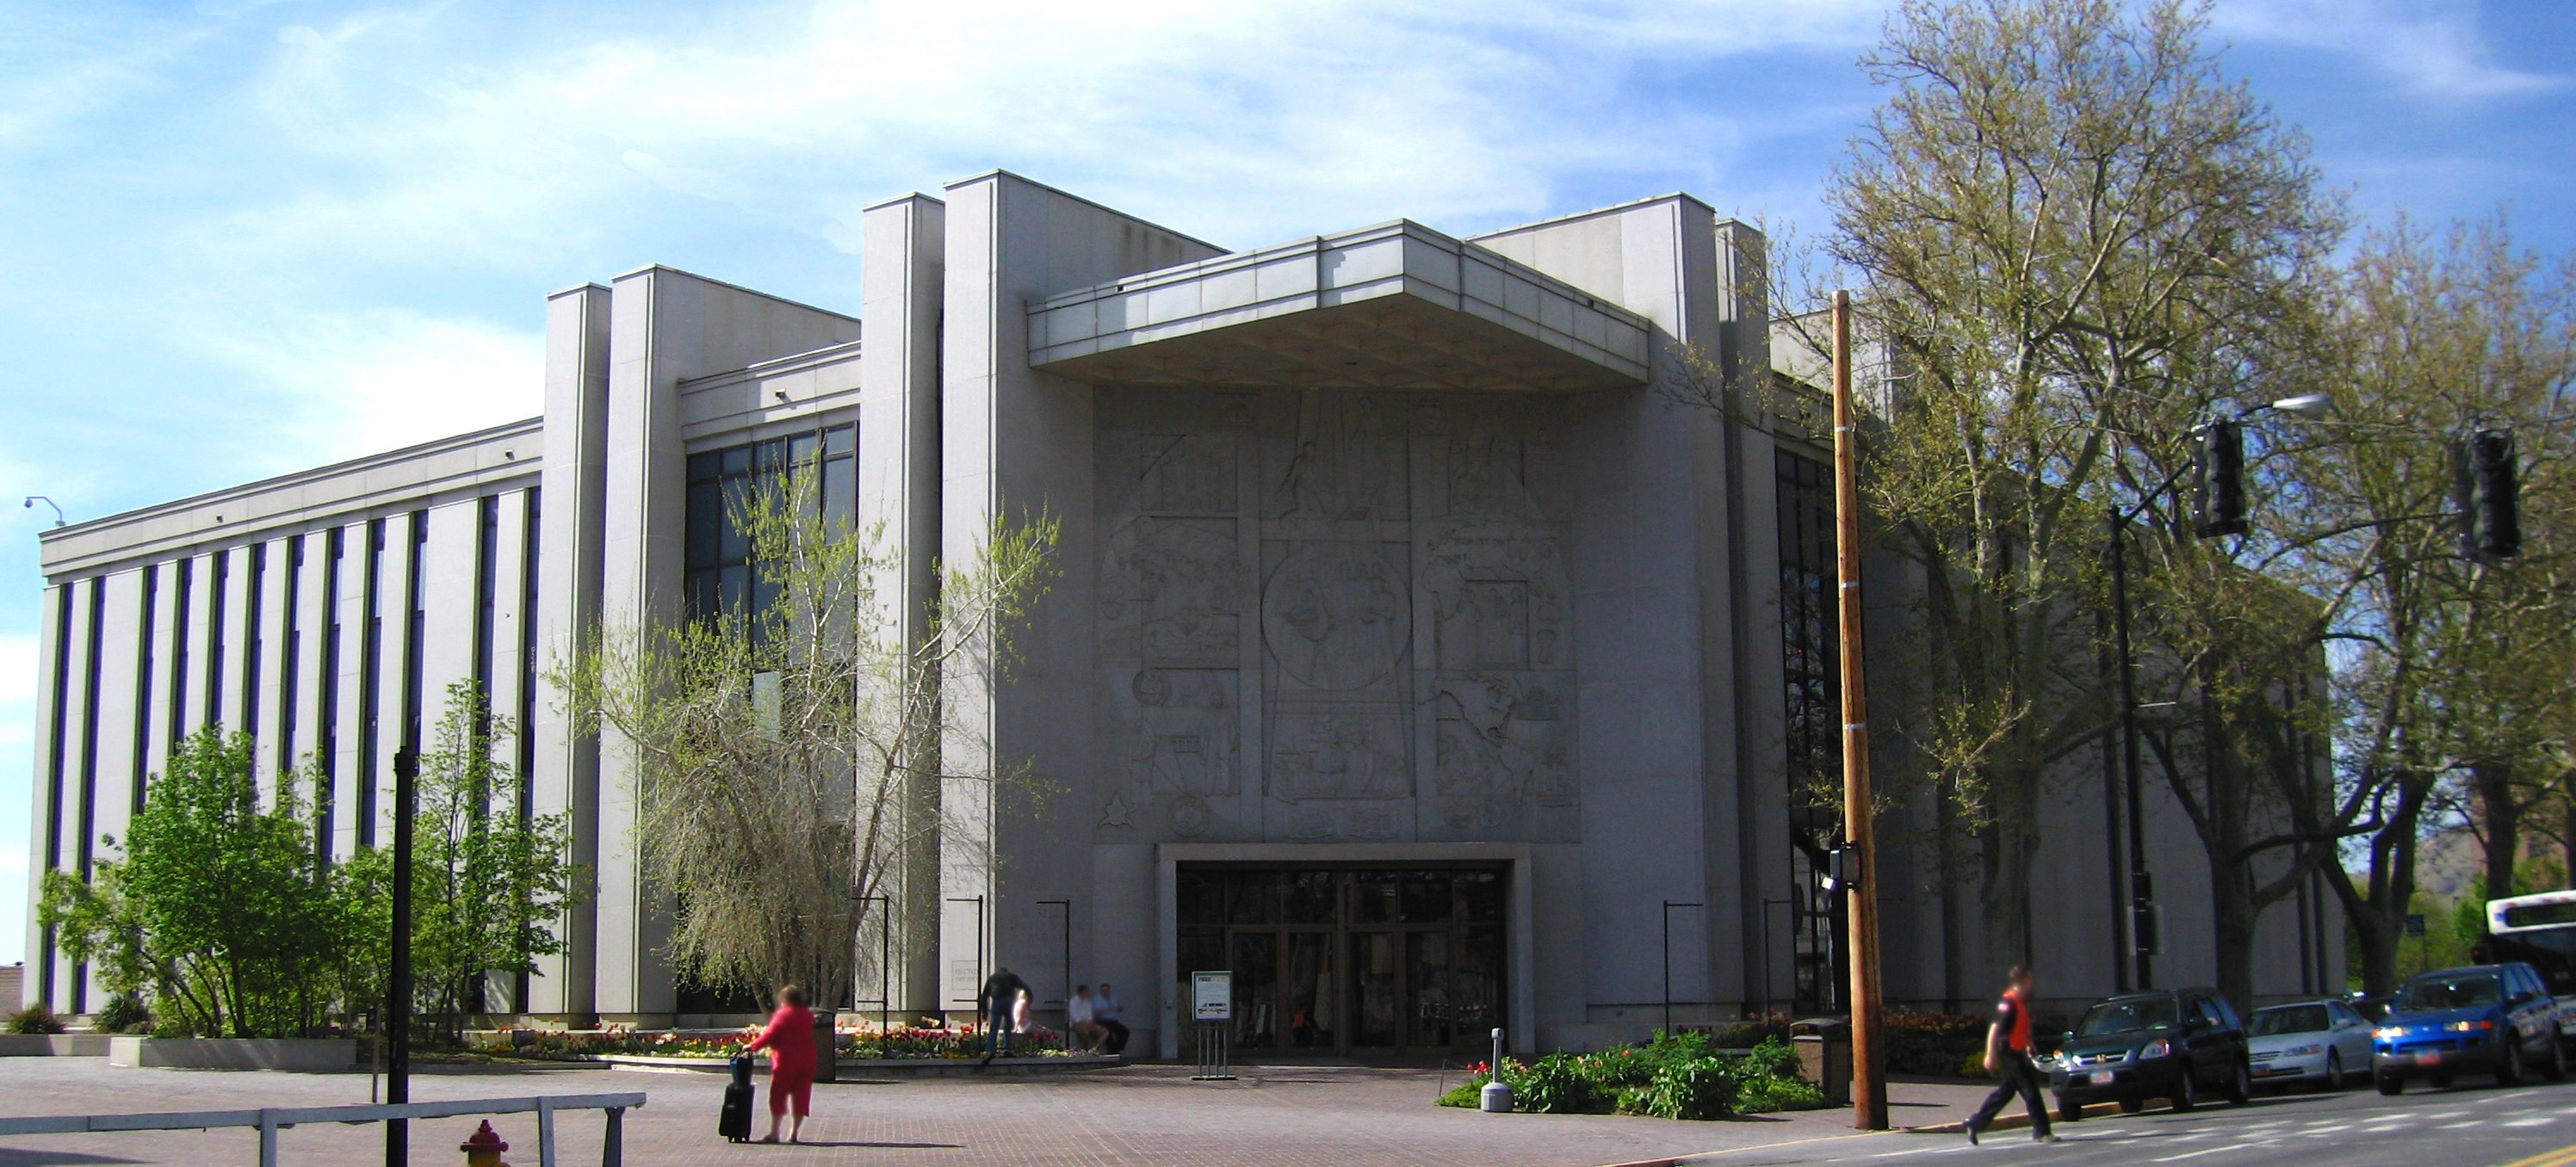 The museum is located west of Temple Square and north of the Family History Library.